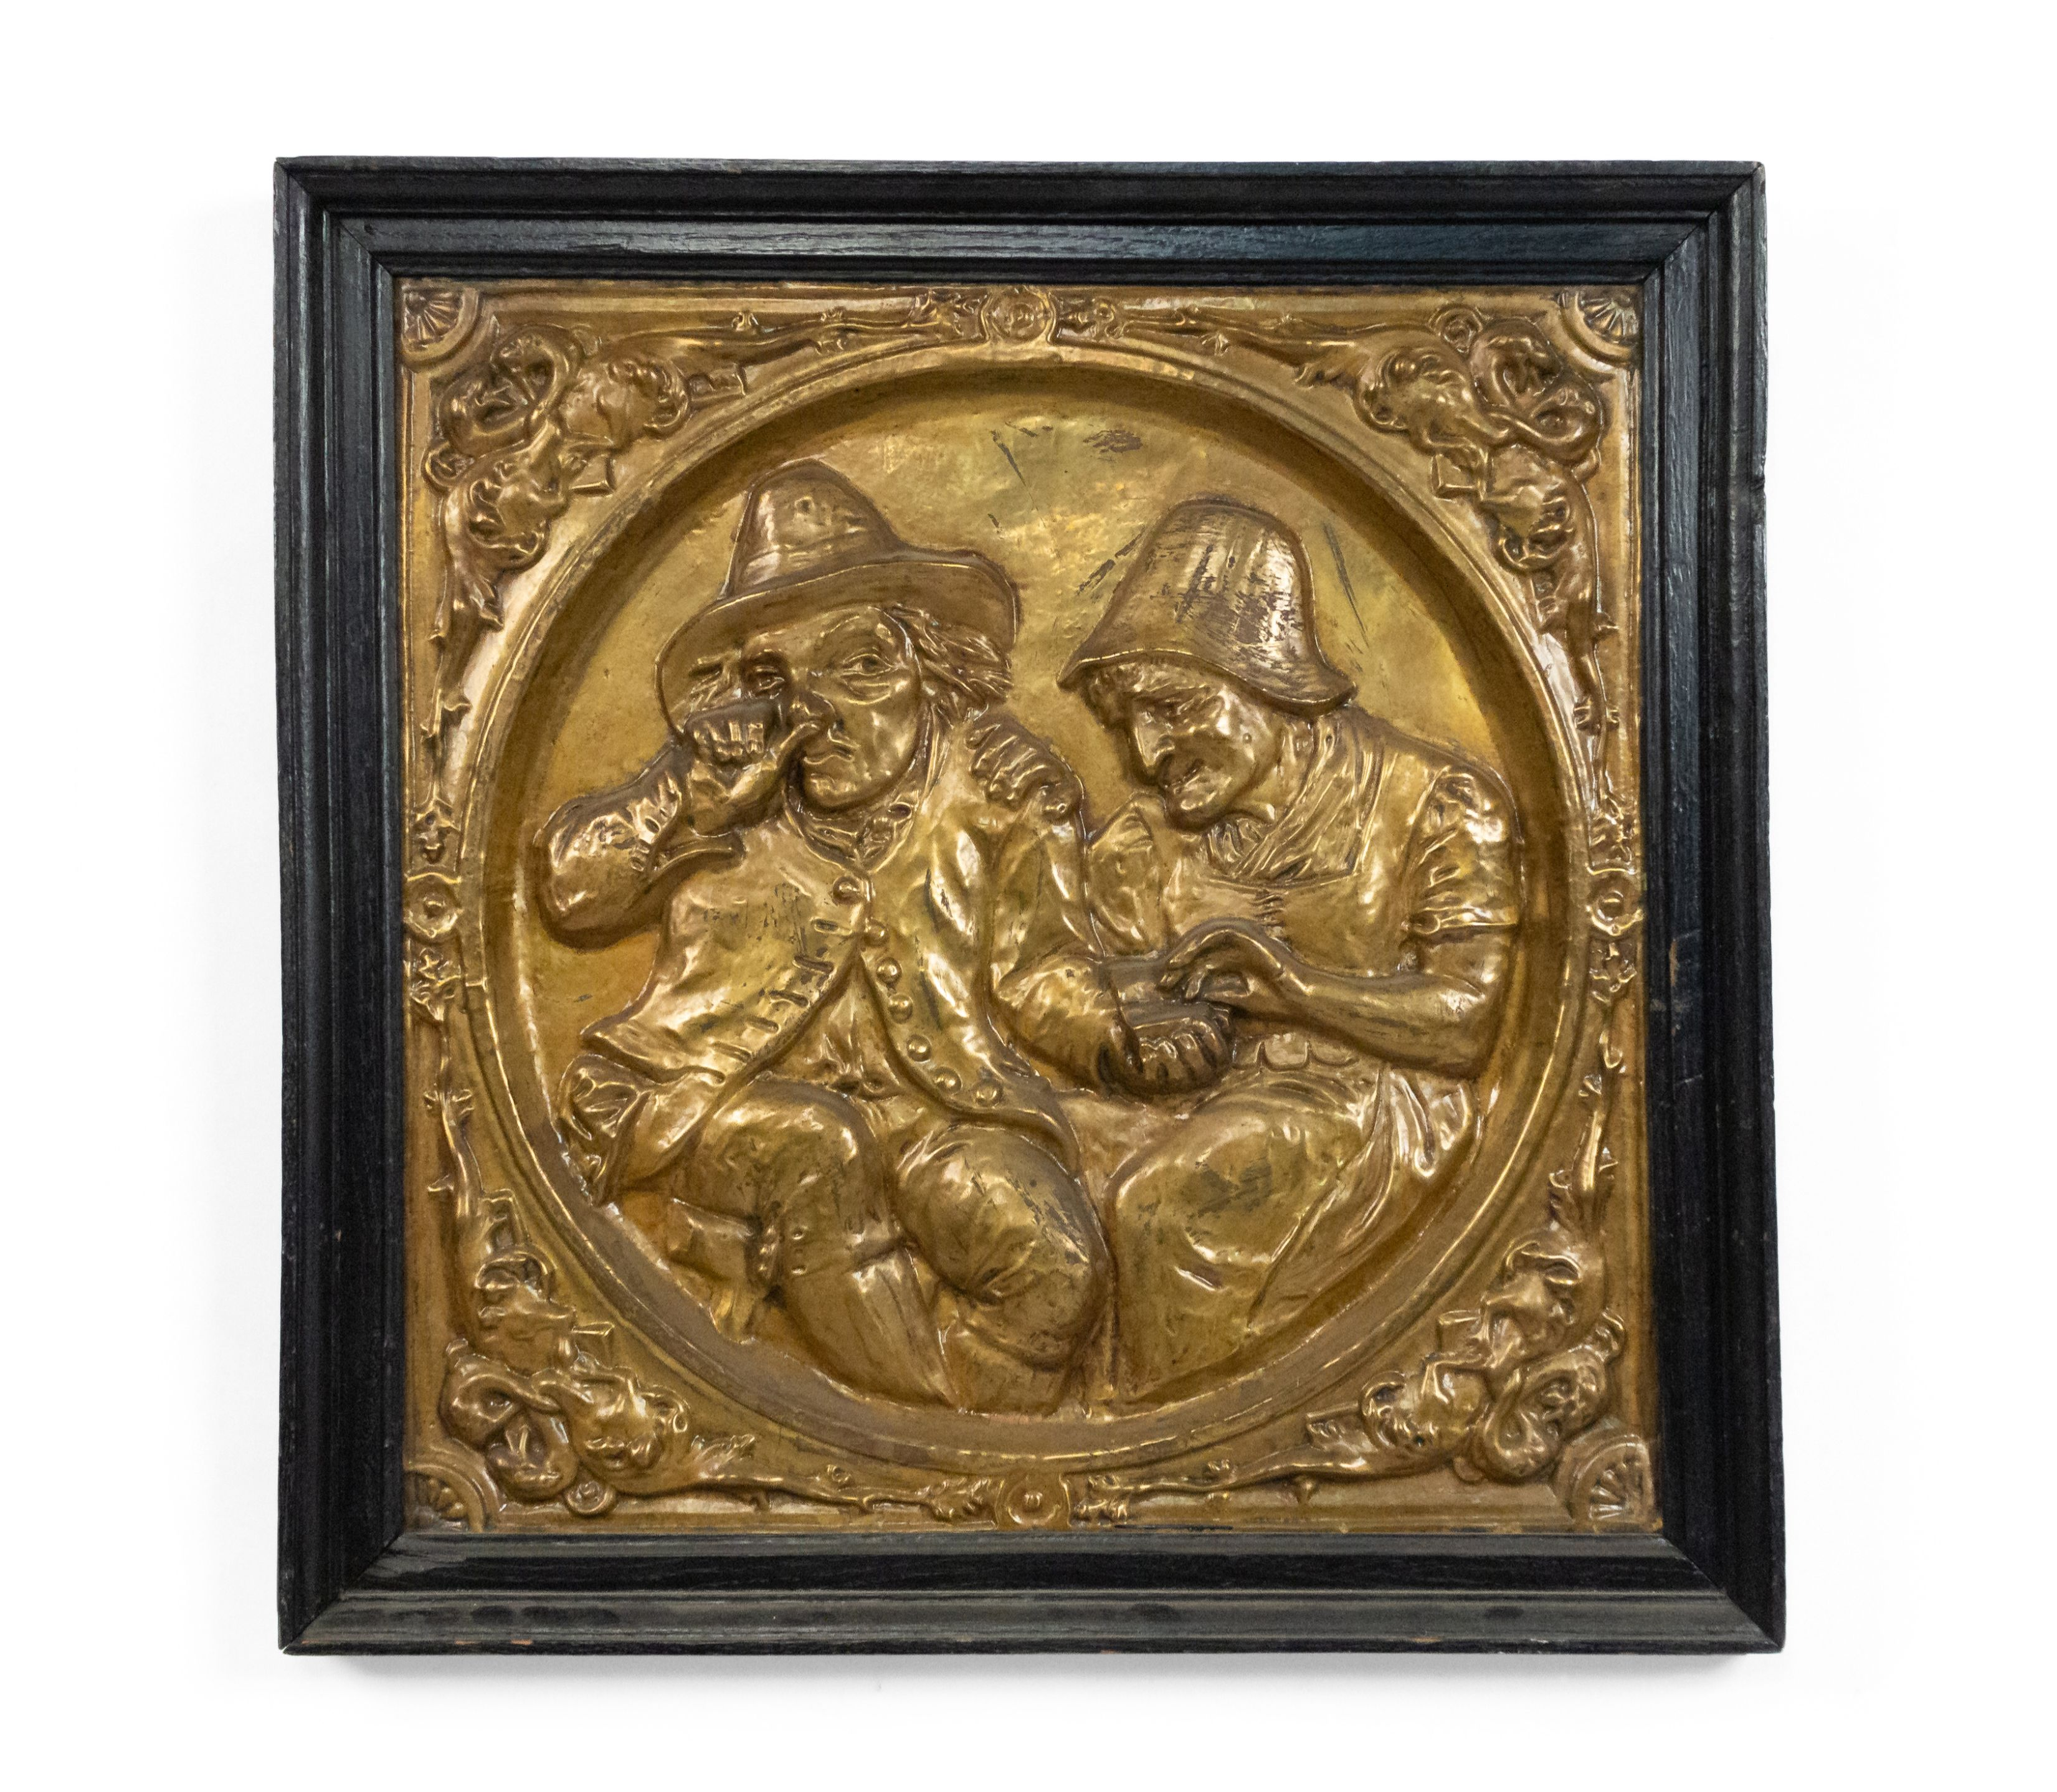 Italian Renaissance Brass Embossed Wall Plaques